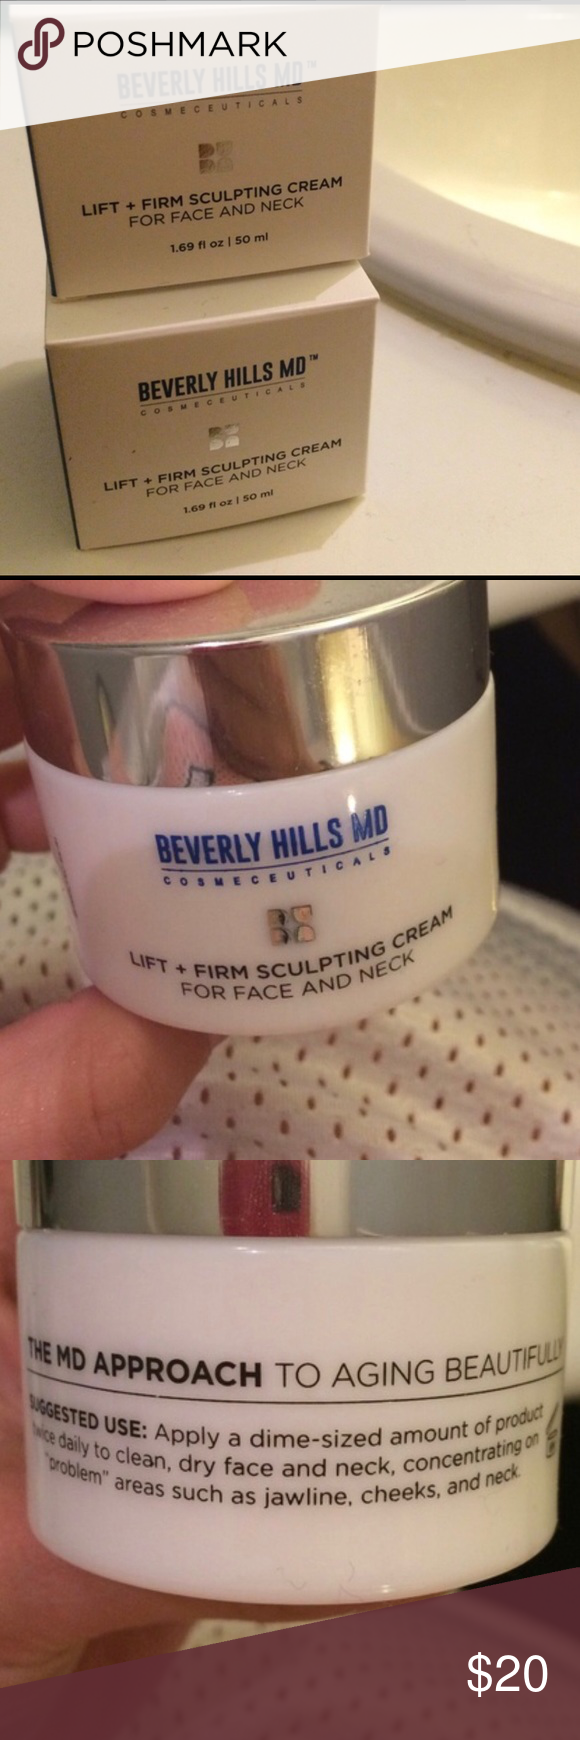 Beverly hill md lift and firming reviews - Idealift Reviews The Real Reason Your Skin Is Aging Your Secret Code Is Lift Firm Sculpting Cream